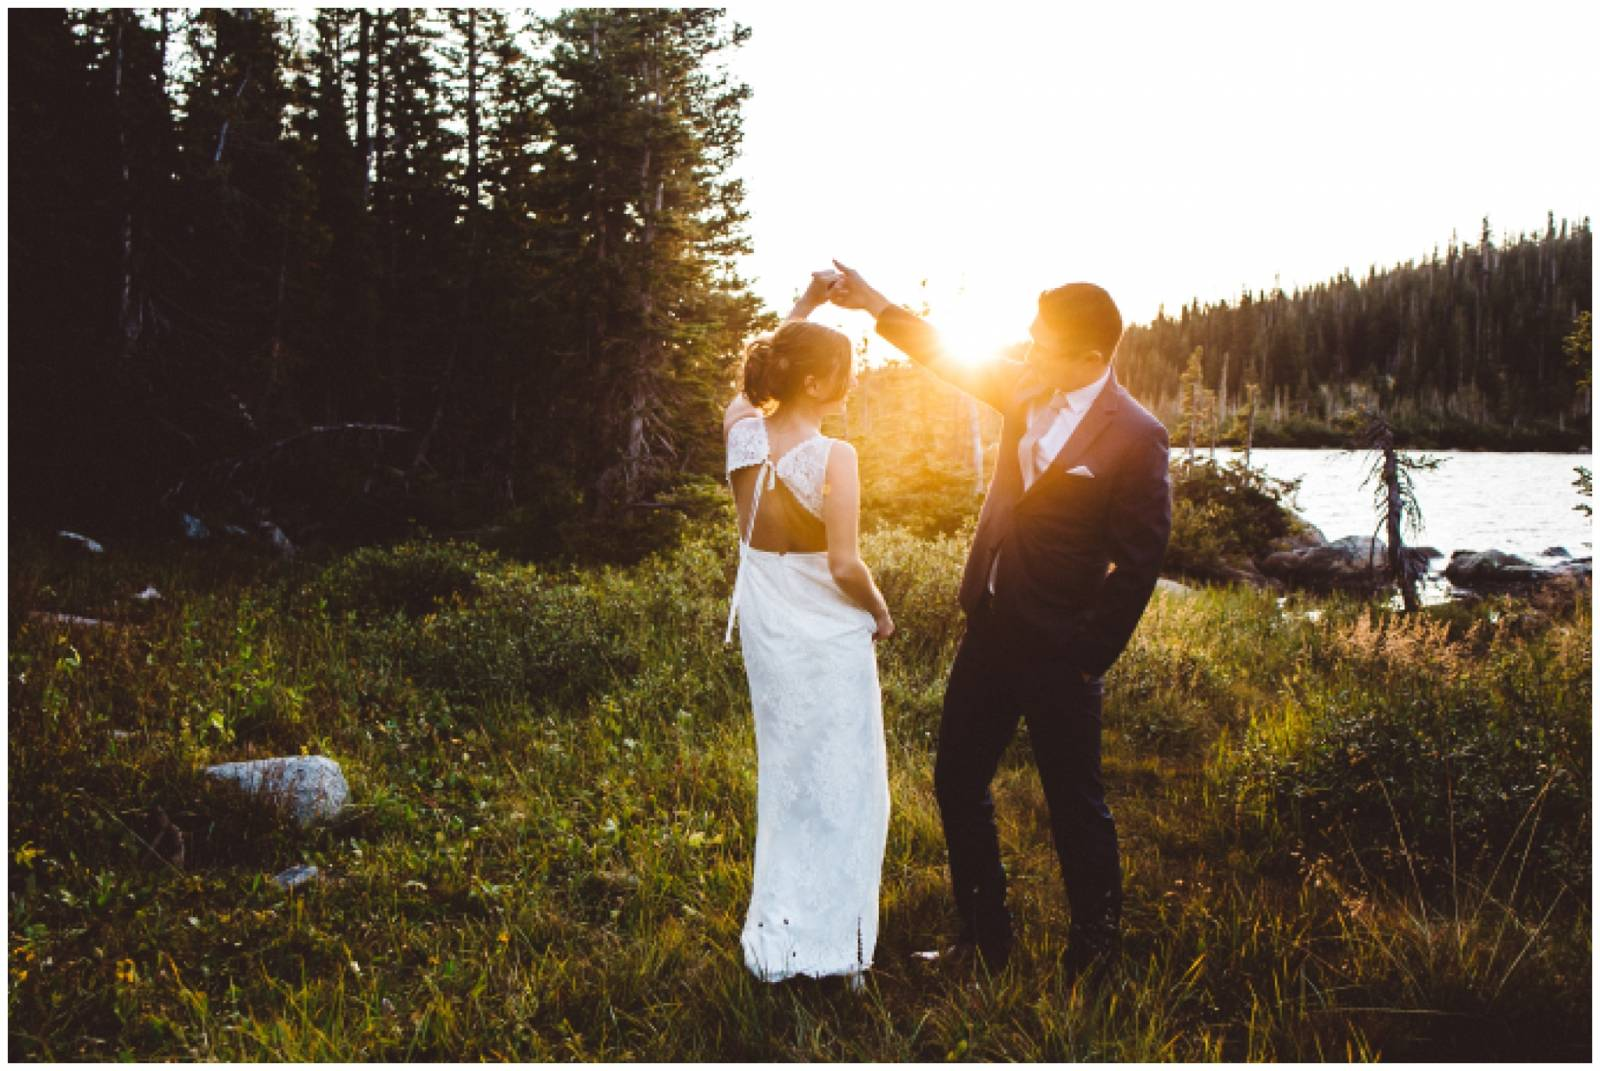 Shayla Velazquez Photography captures groom twirling bride at sunset wedding in the Rocky Mountains